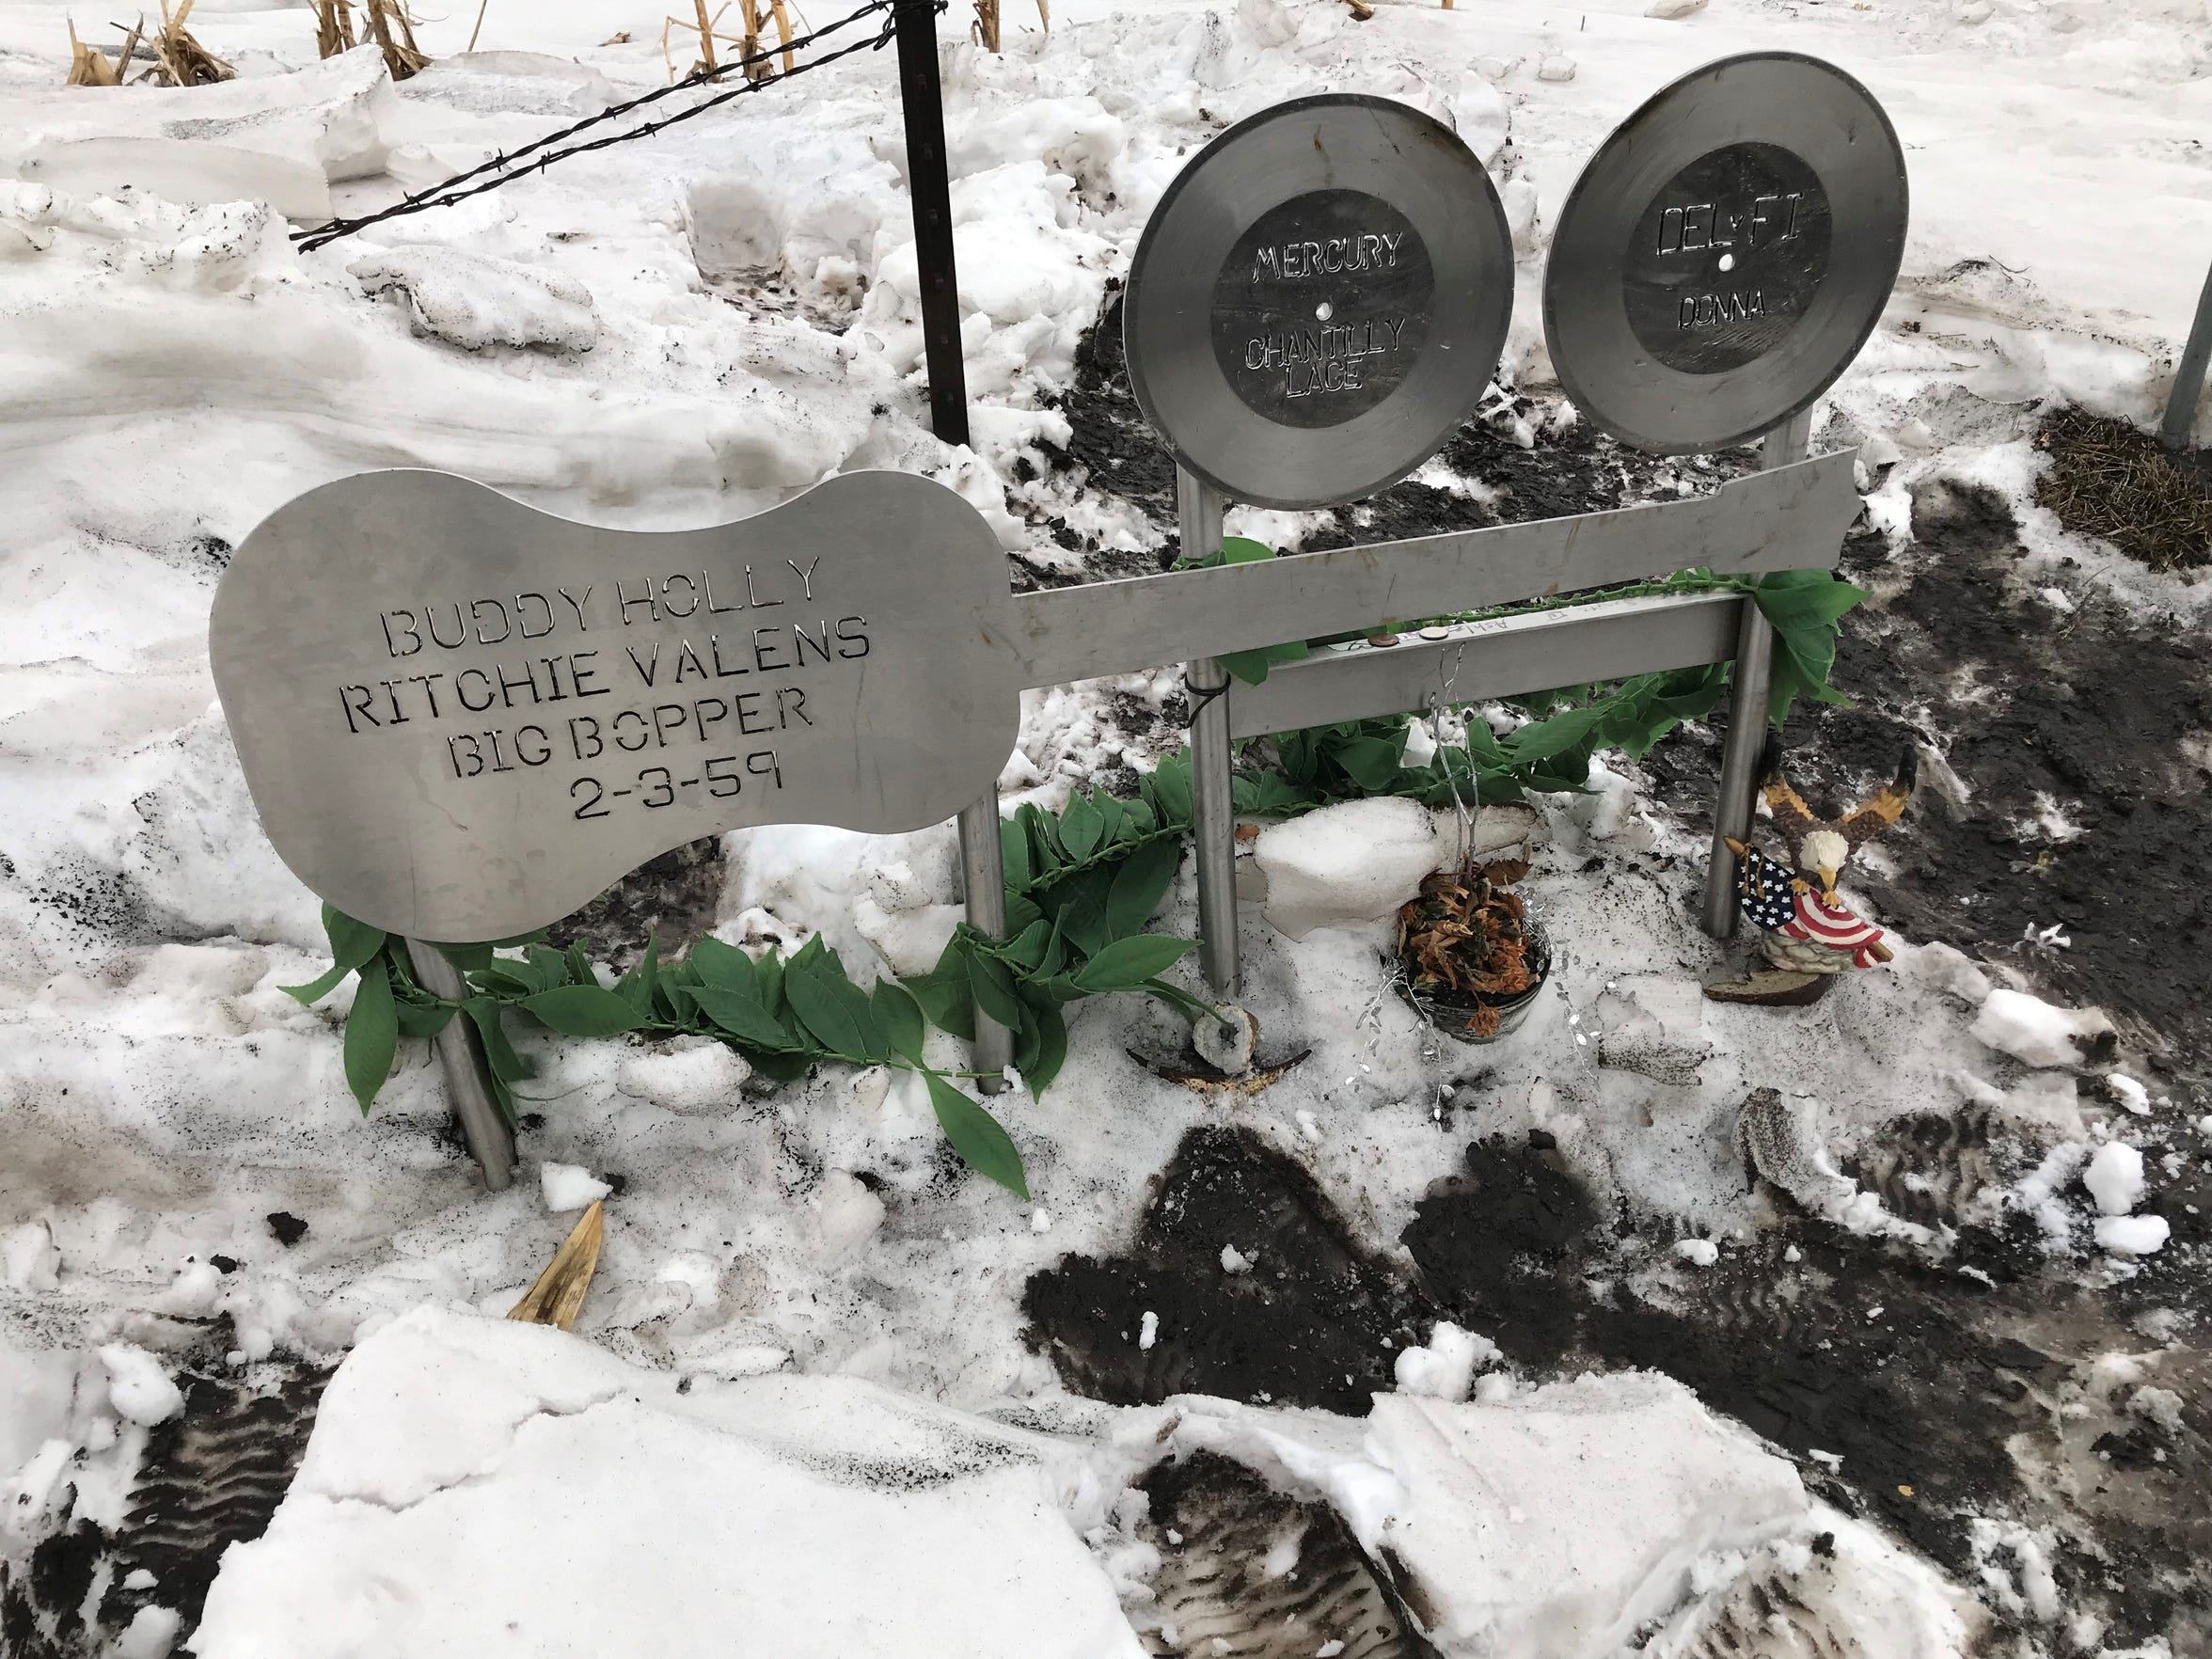 A memorial marks the site of the plane crash that killed Buddy Holly, Ritchie Valens, J.P. Richardson and Roger Peterson, the pilot.